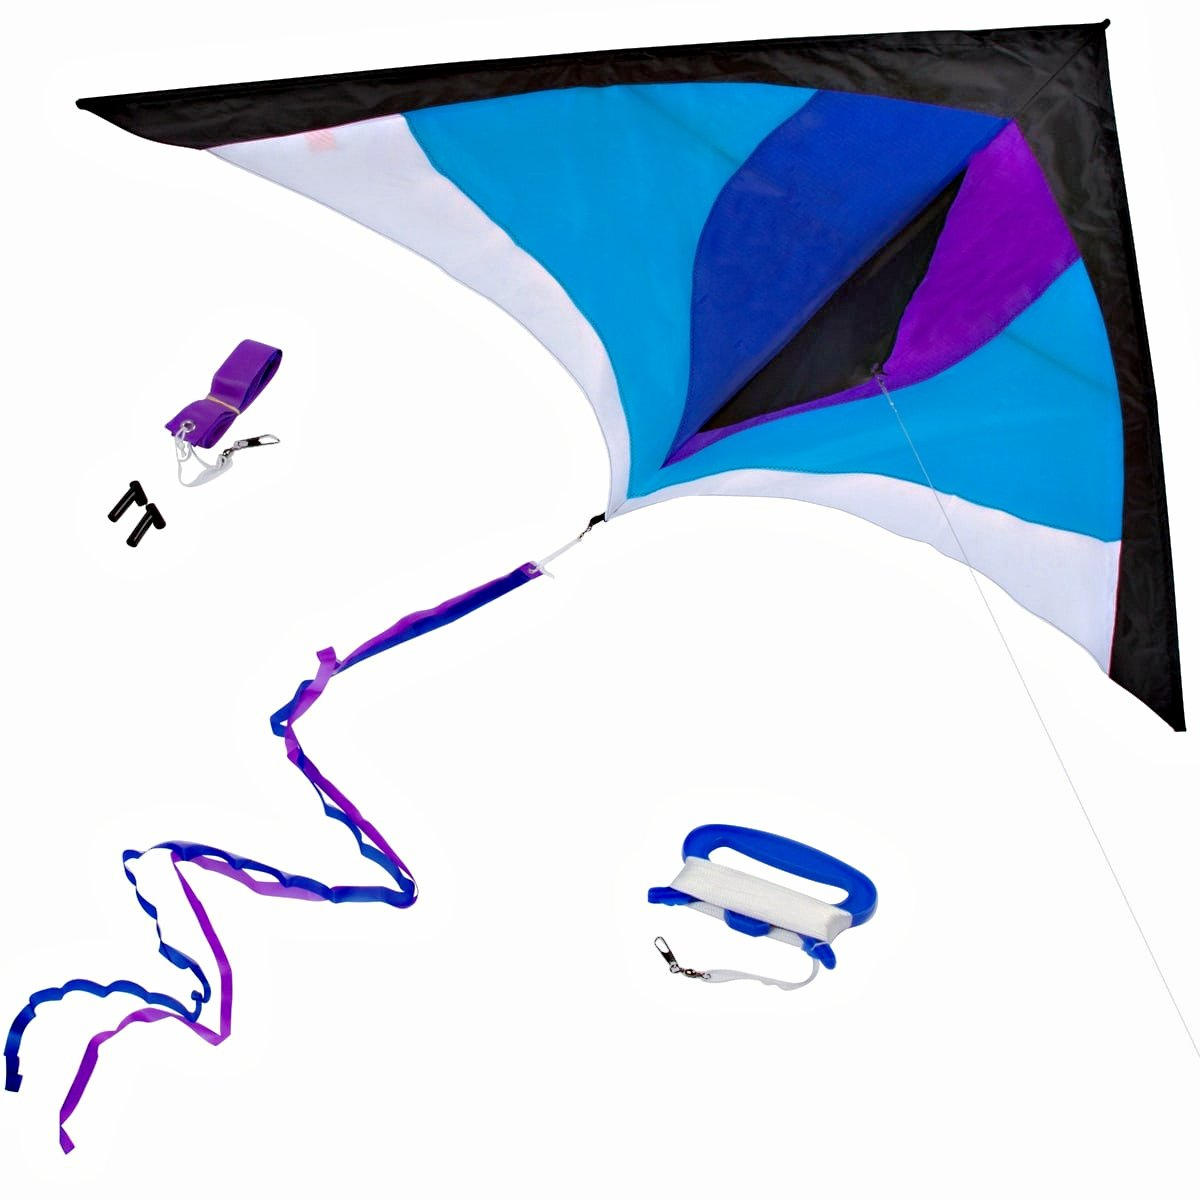 Best Delta Kite, Easy Fly for Kids and Beginners, Single Line w/Tail Ribbons, Stunning Blue & Purple, Materials, Large, Meticulous Design and Testing + Guarantee + Bonuses! by StuffKidsLove